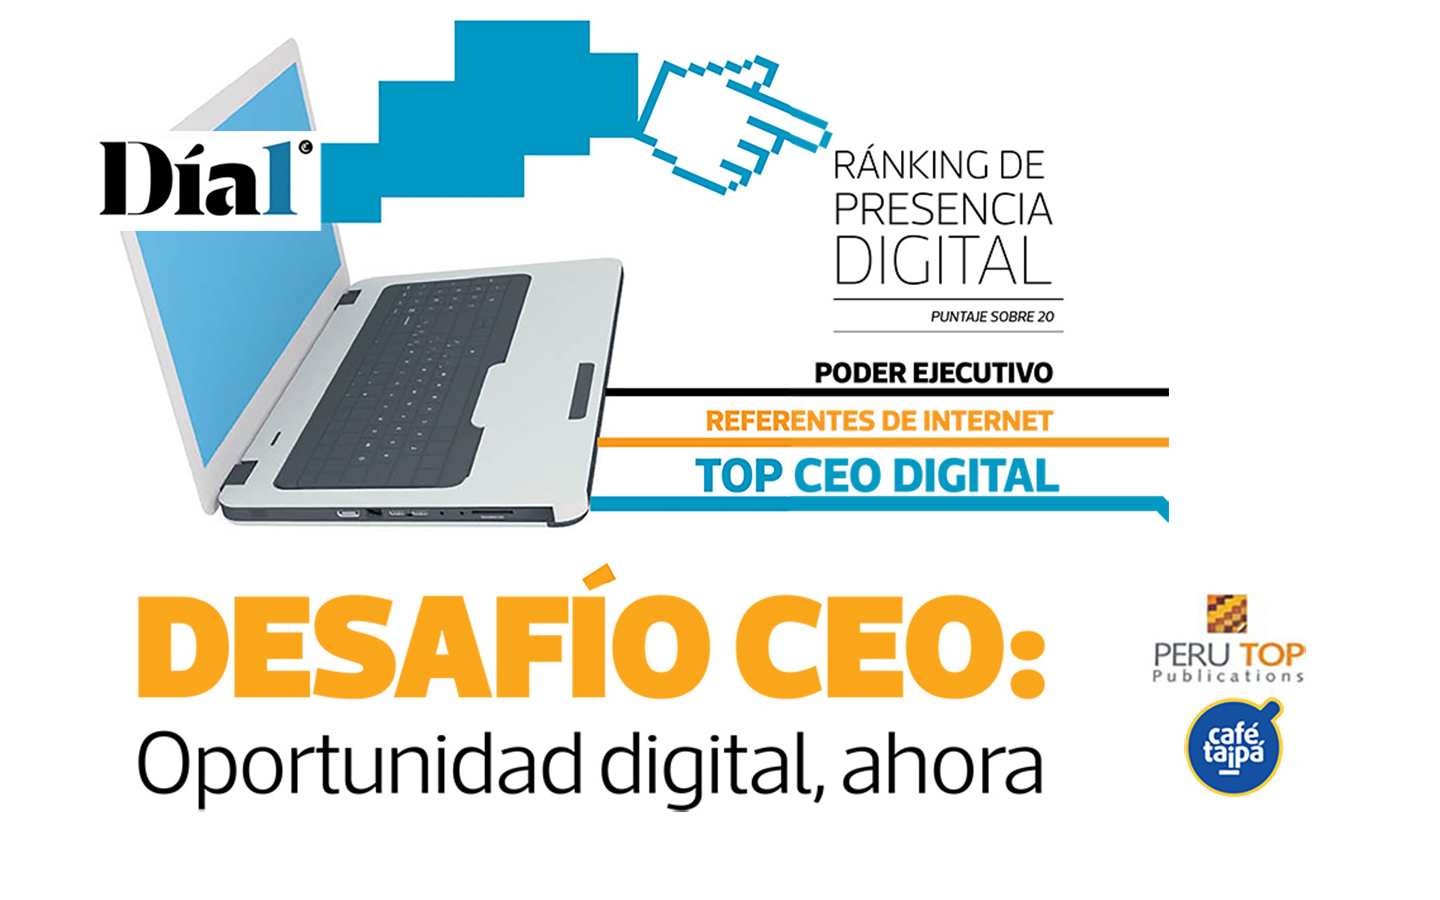 ranking-ceo-digital-peru-cafe-taipa